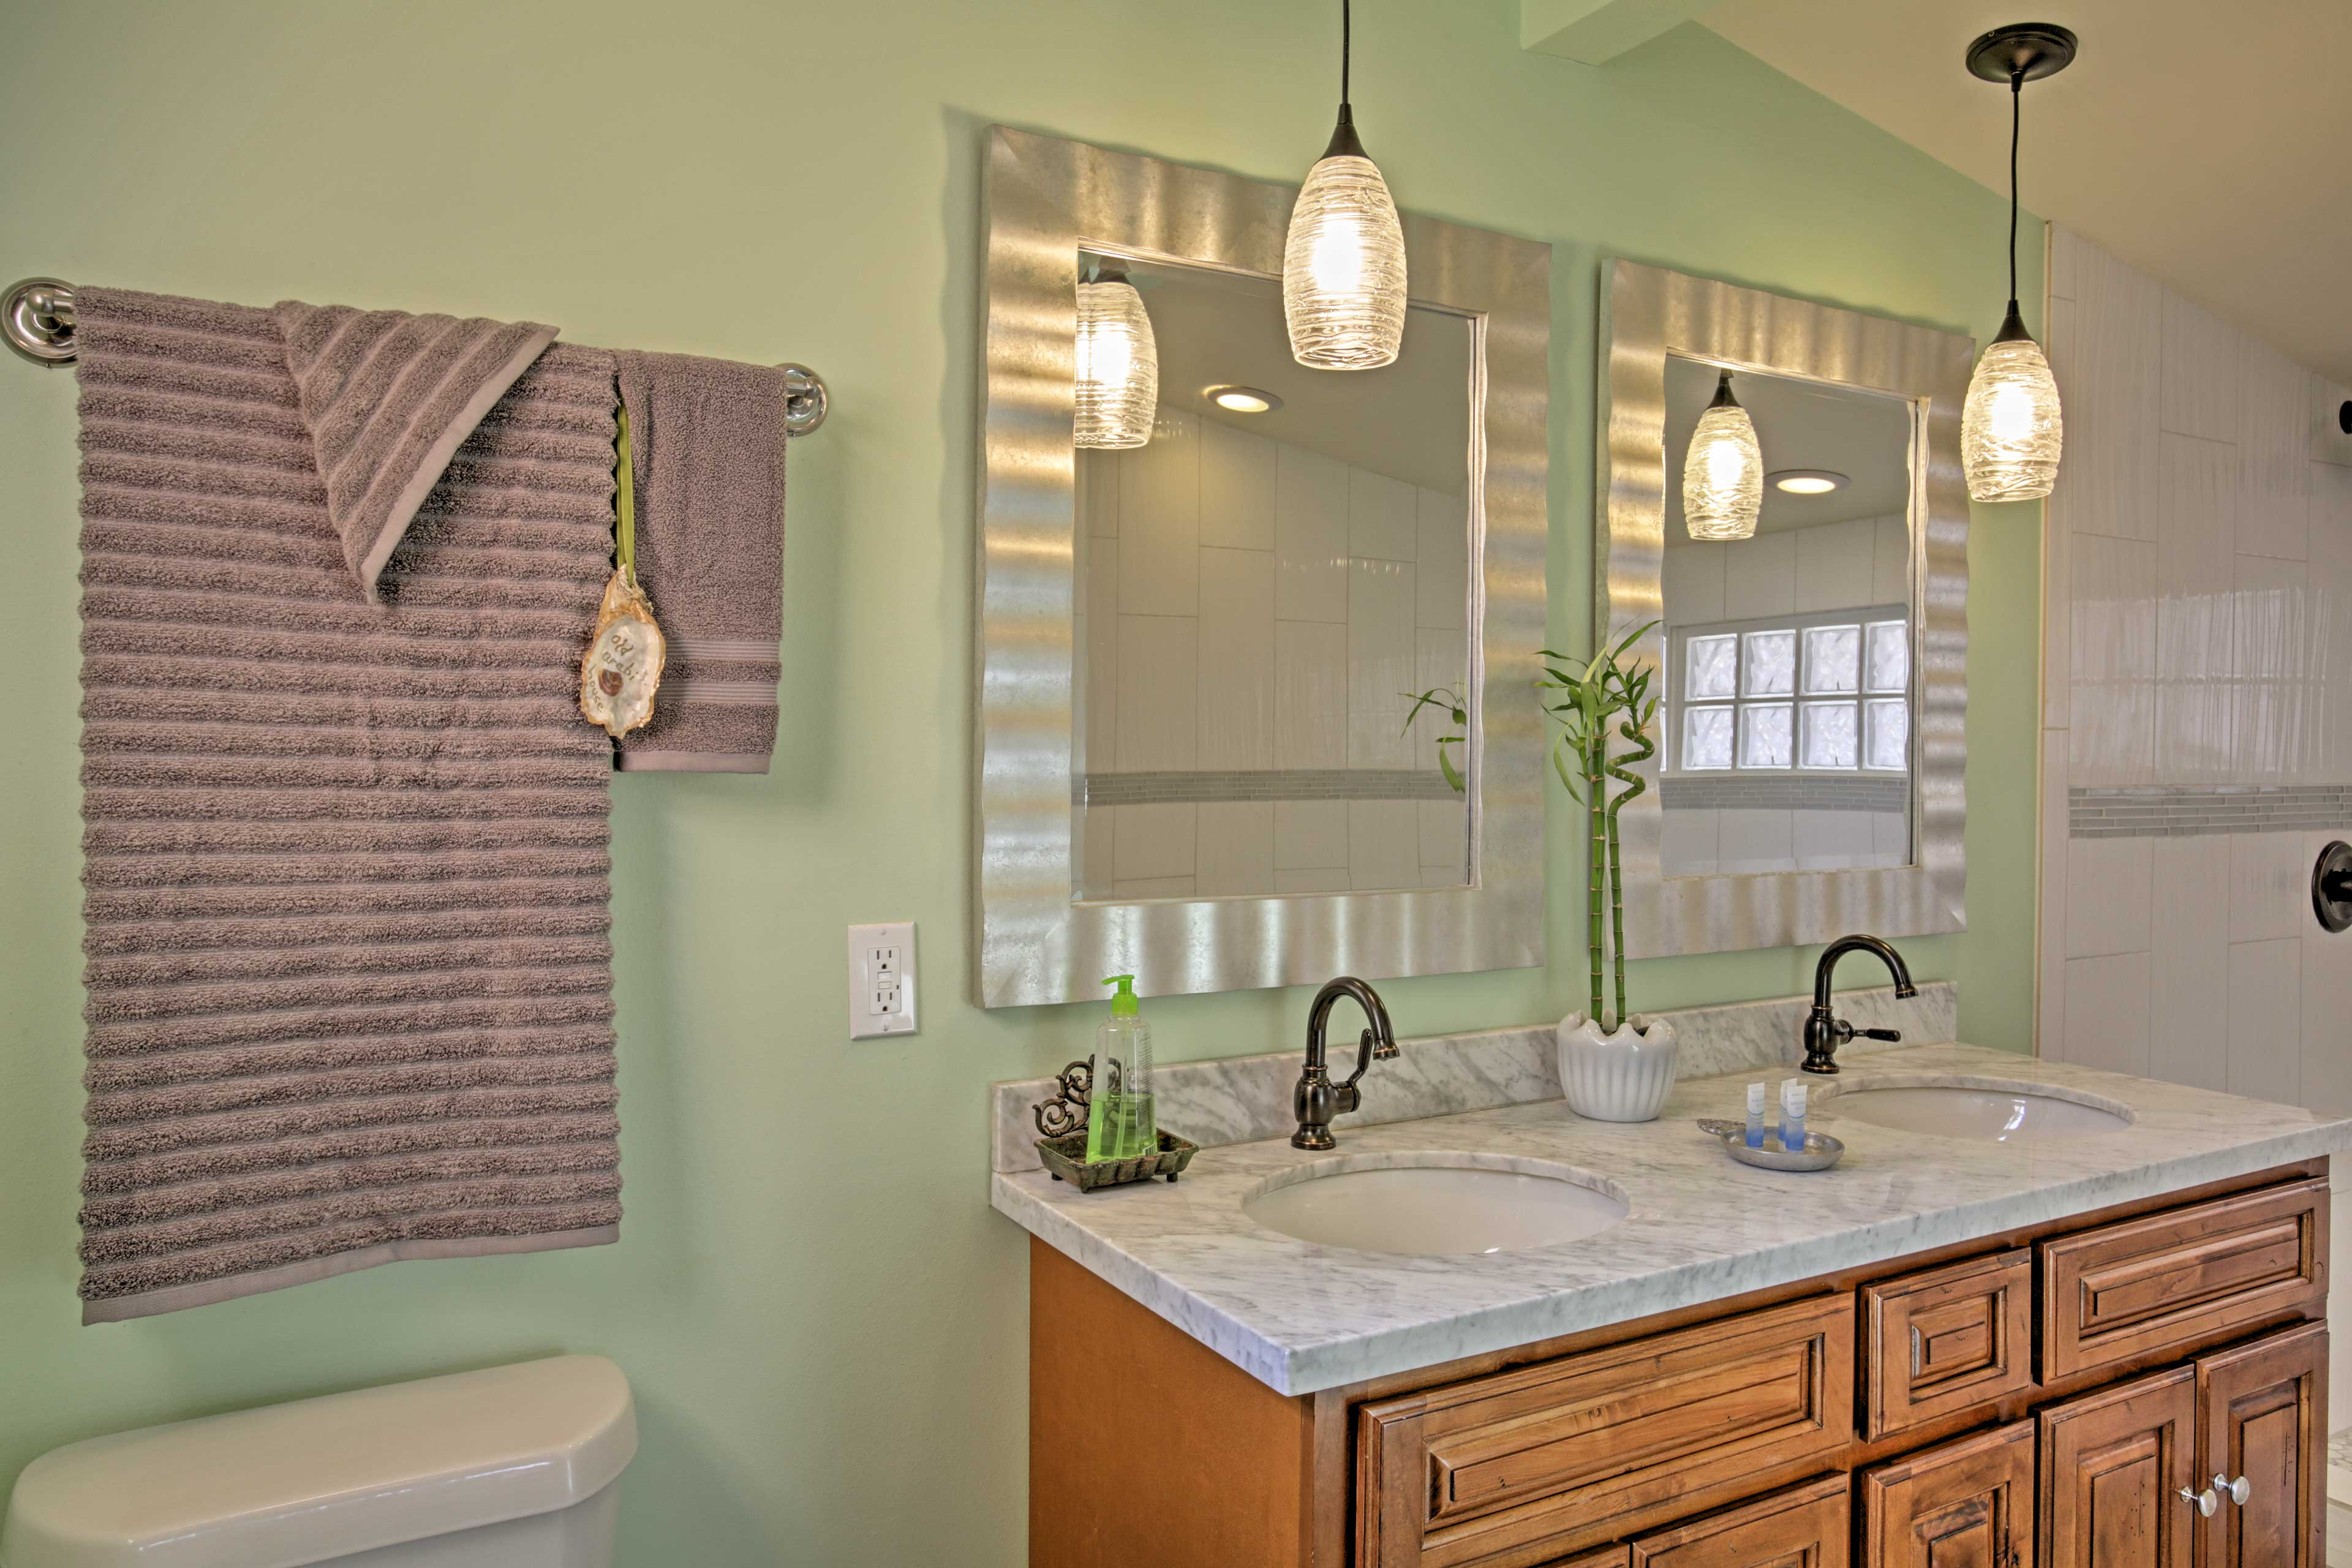 Both of the home's bathrooms feature granite countertops and walk-in showers.